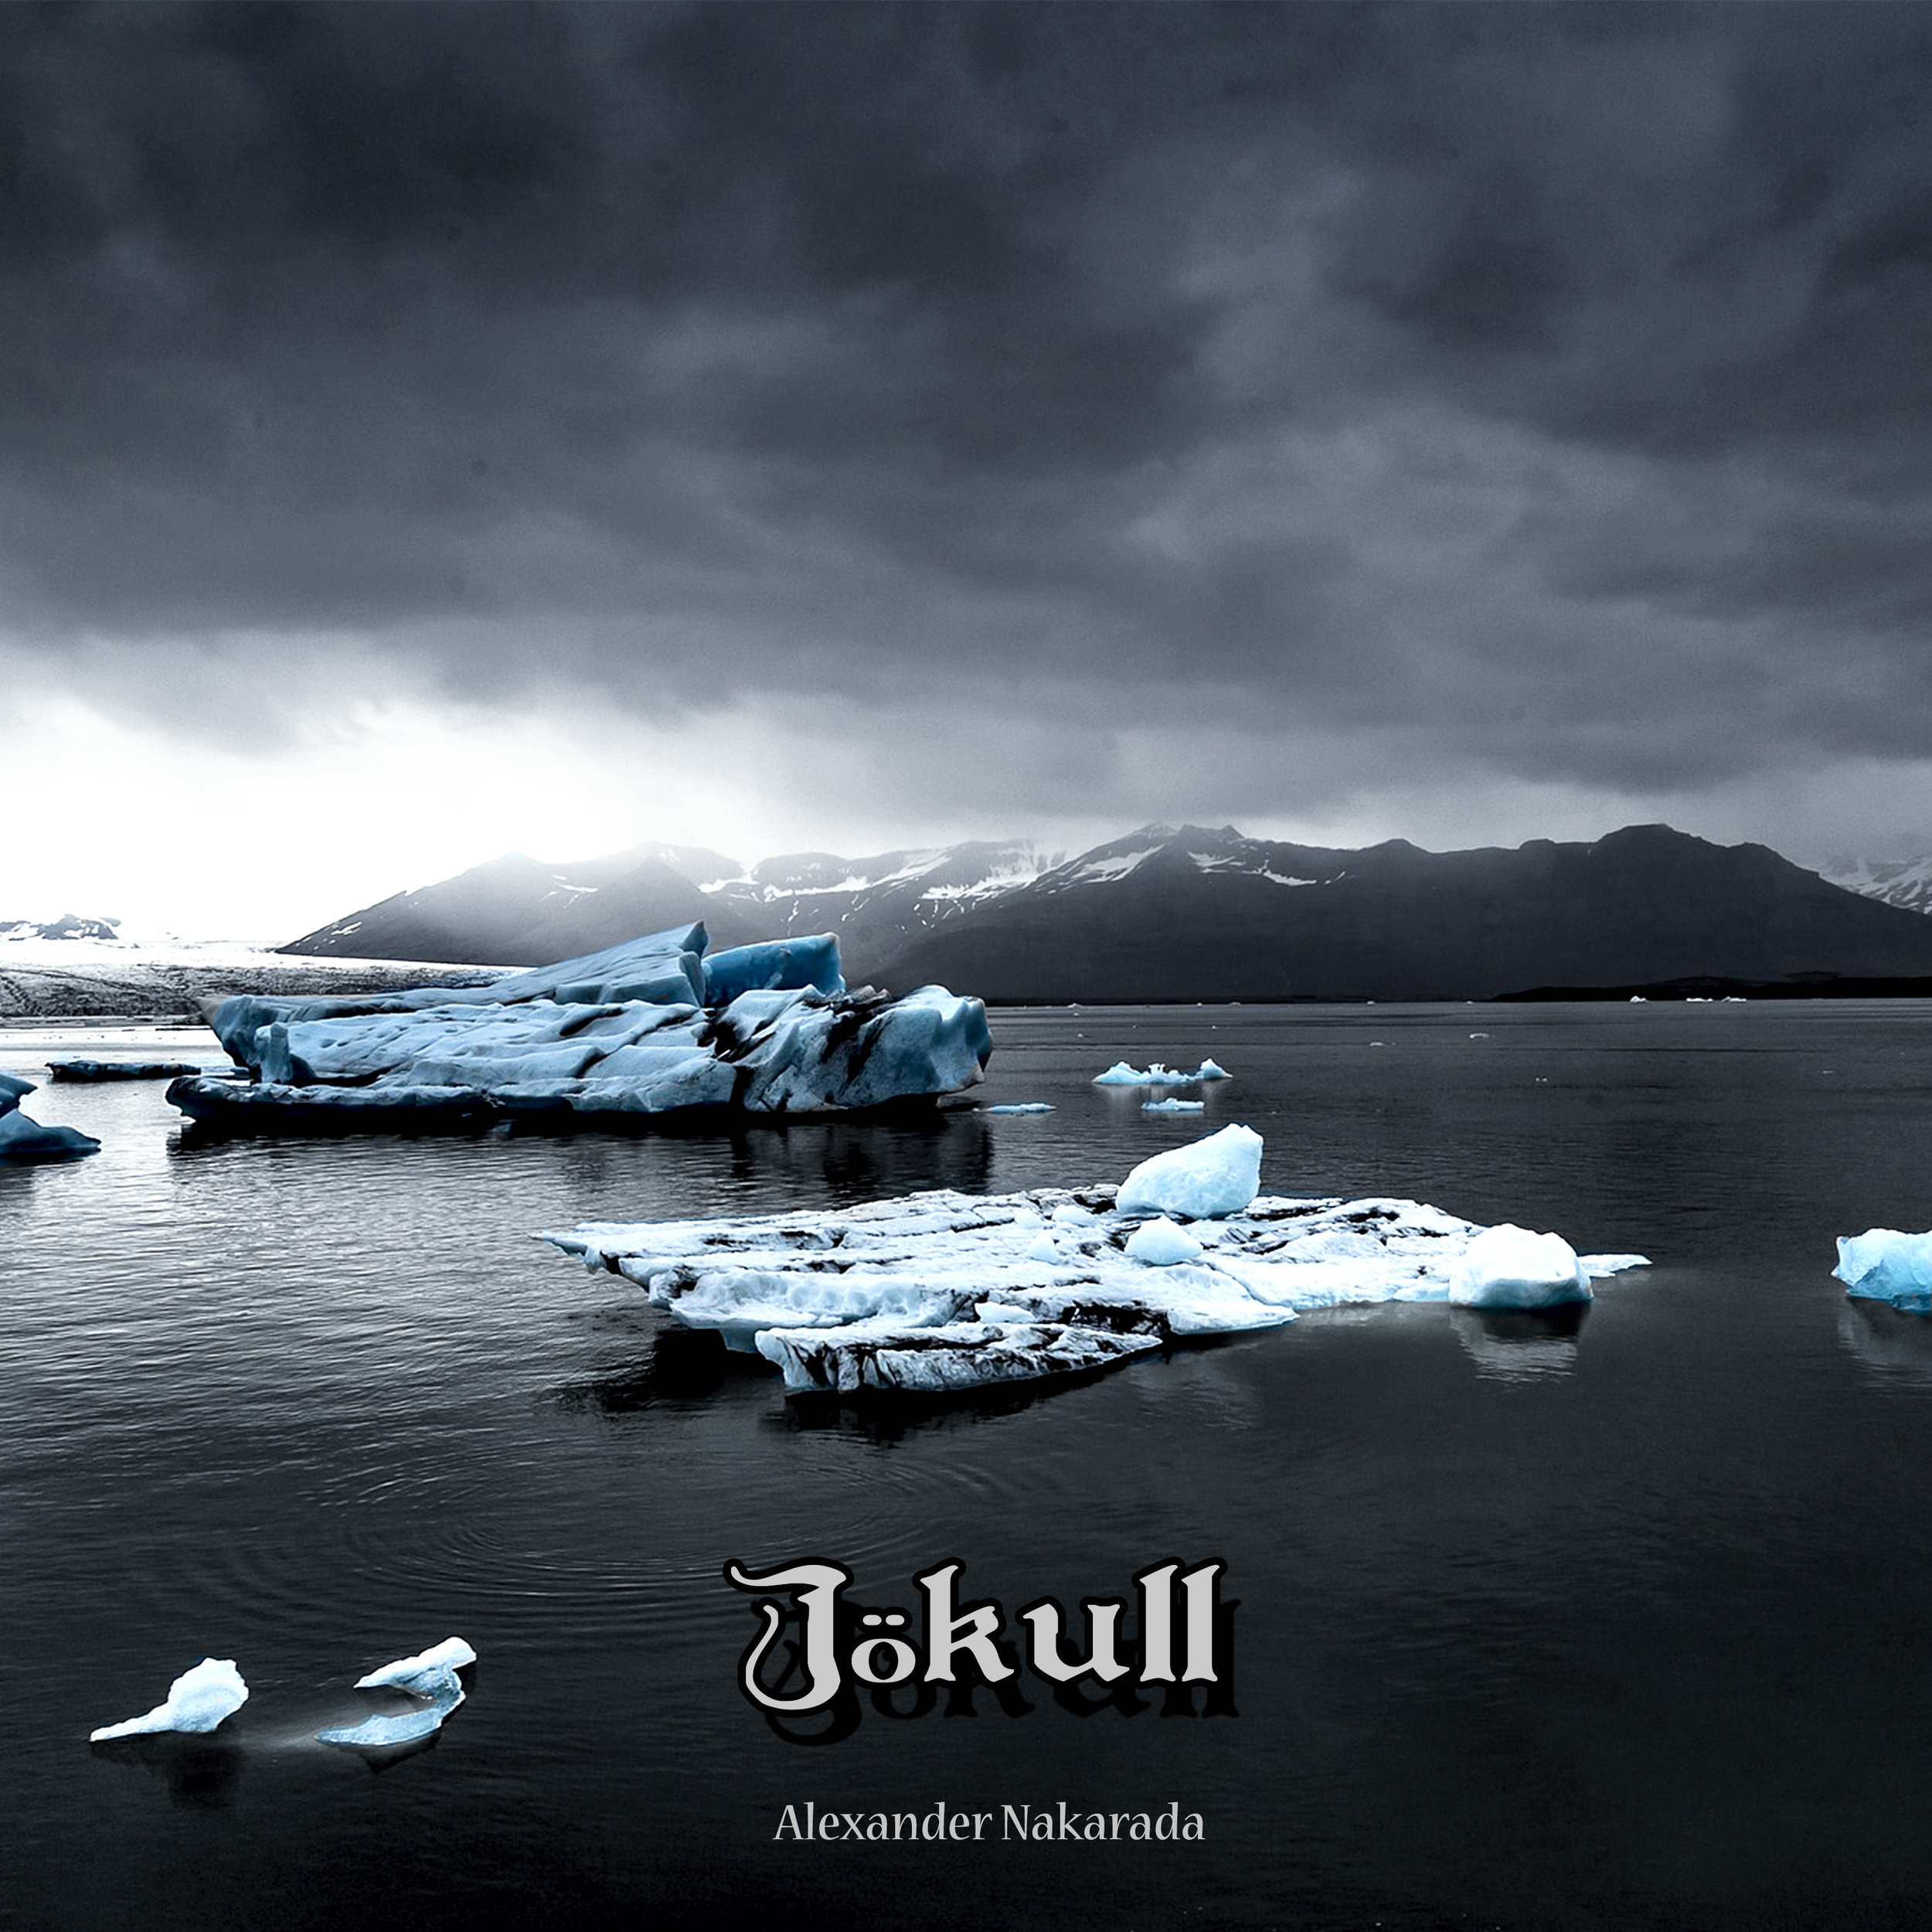 11. Jökull - A 3-piece single containing one song in three different genres. Really cool!